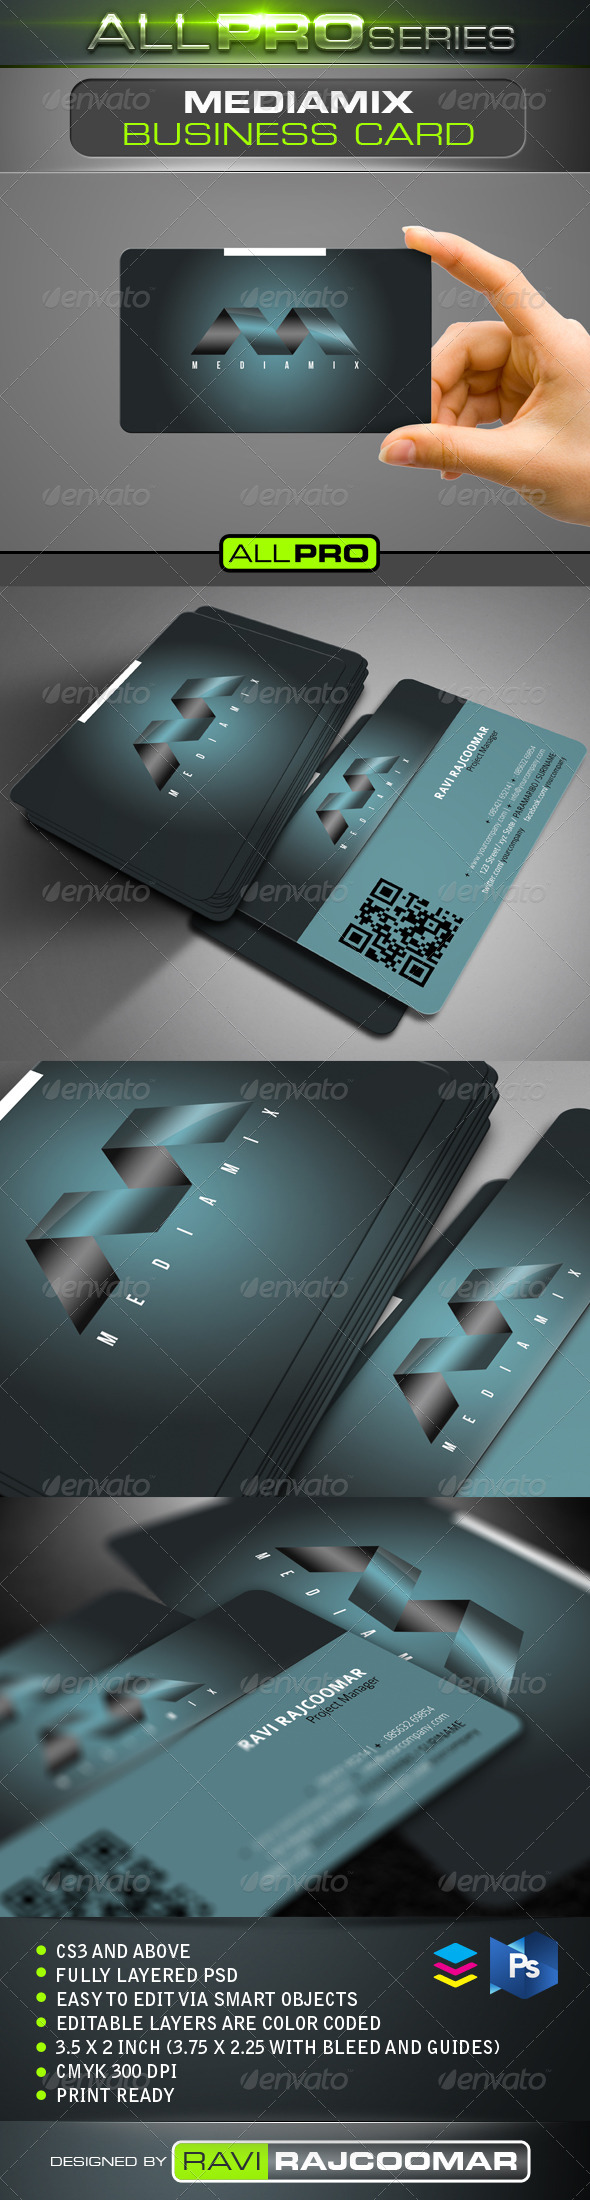 GraphicRiver Mediamix Business Card Template 4720732